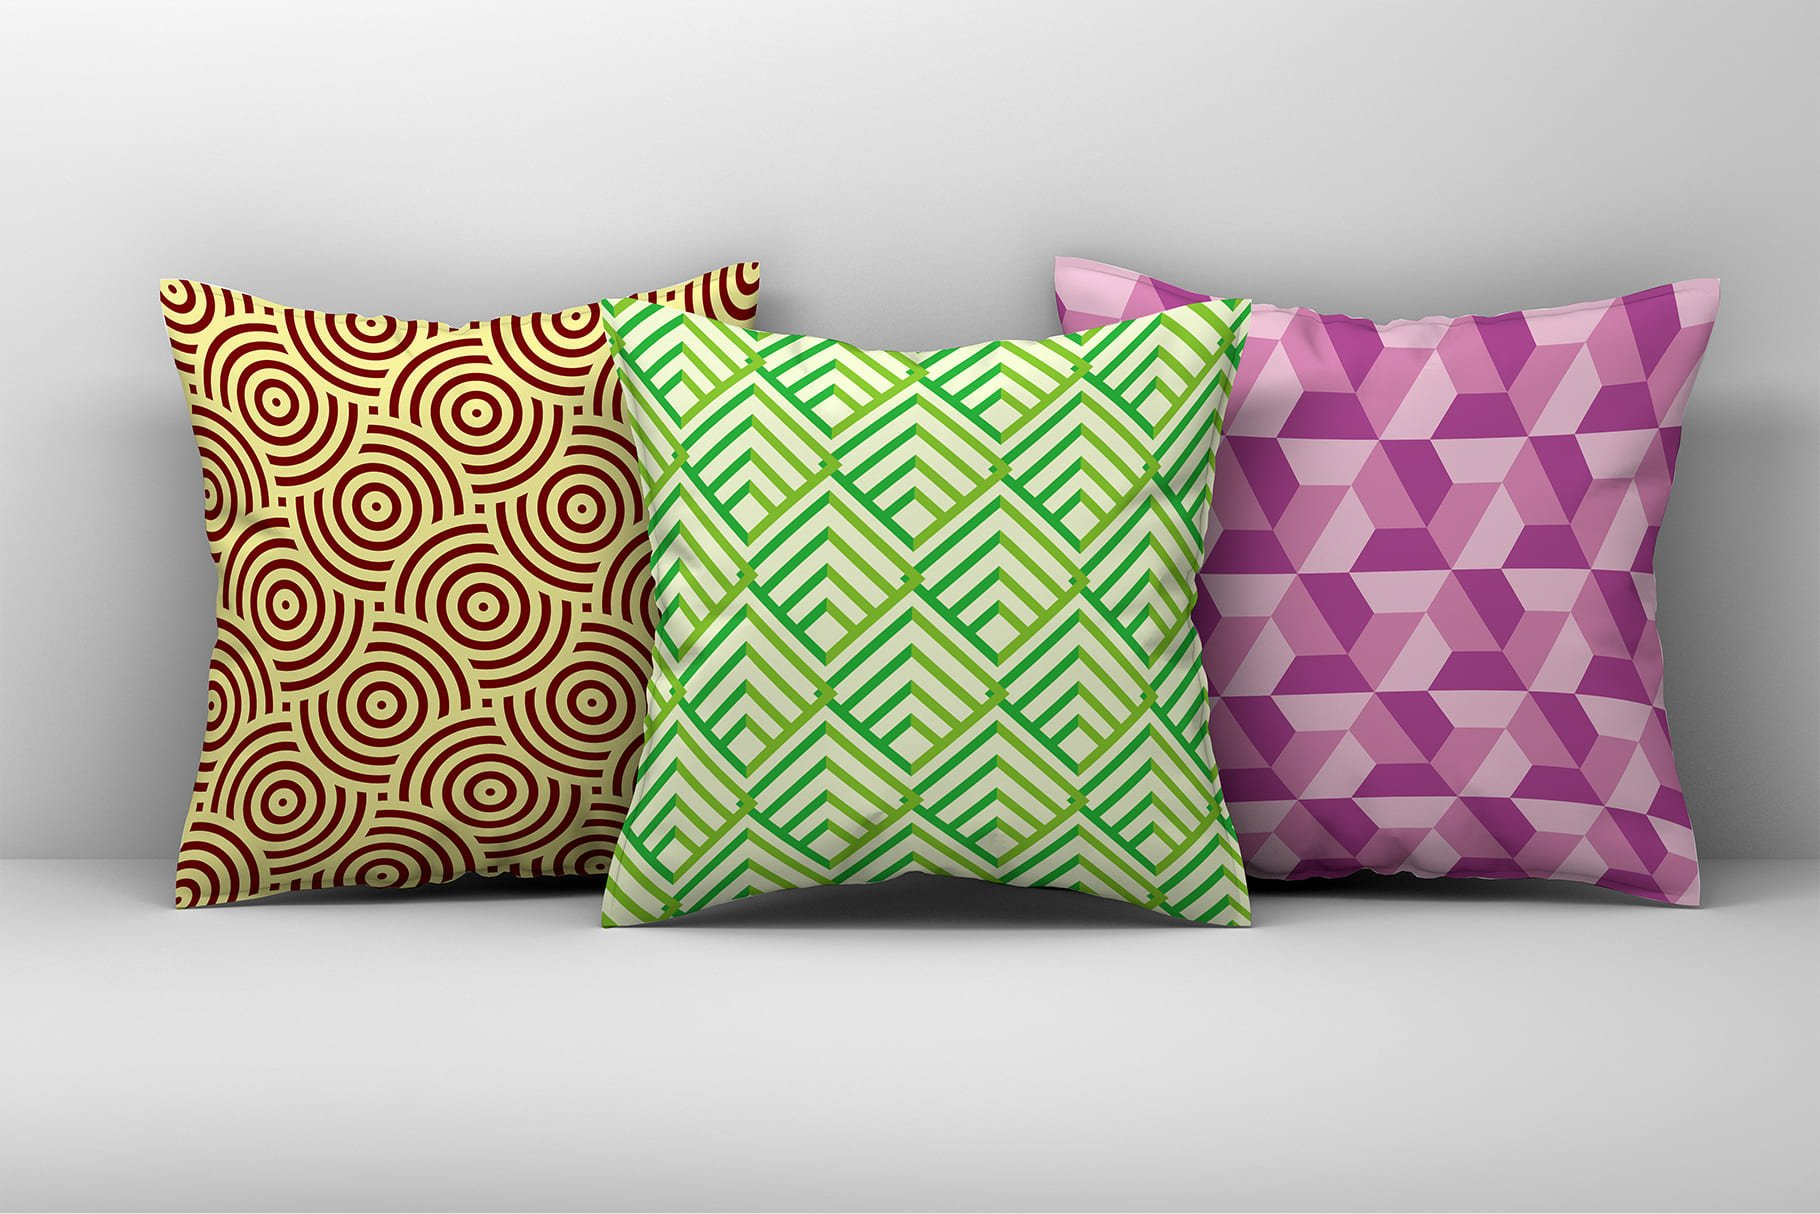 Decorative pillows in different colors with geometric print.